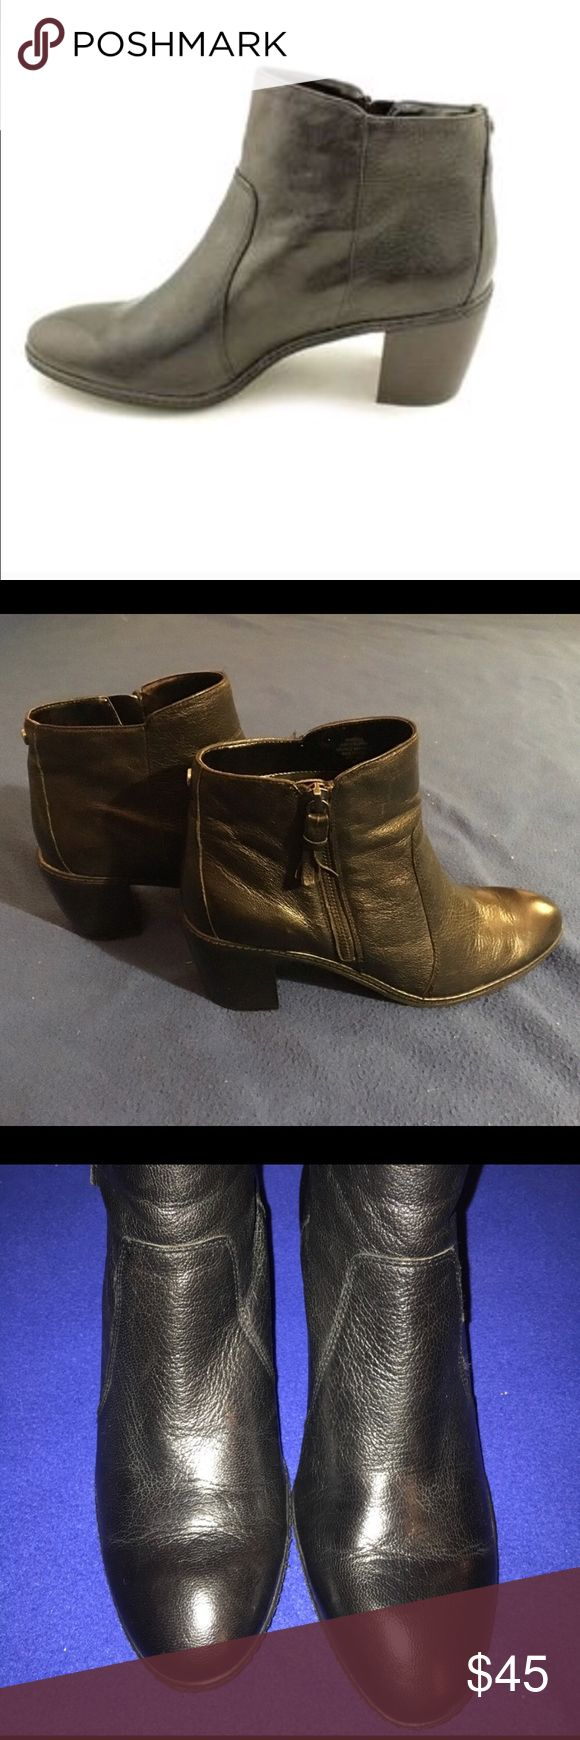 Anne Klein Black Leather Boots Worn only one time. Look brand new. No scratches or scruffs anywhere at all. Super comfortable! Size 9. Anne Klein Shoes Ankle Boots & Booties